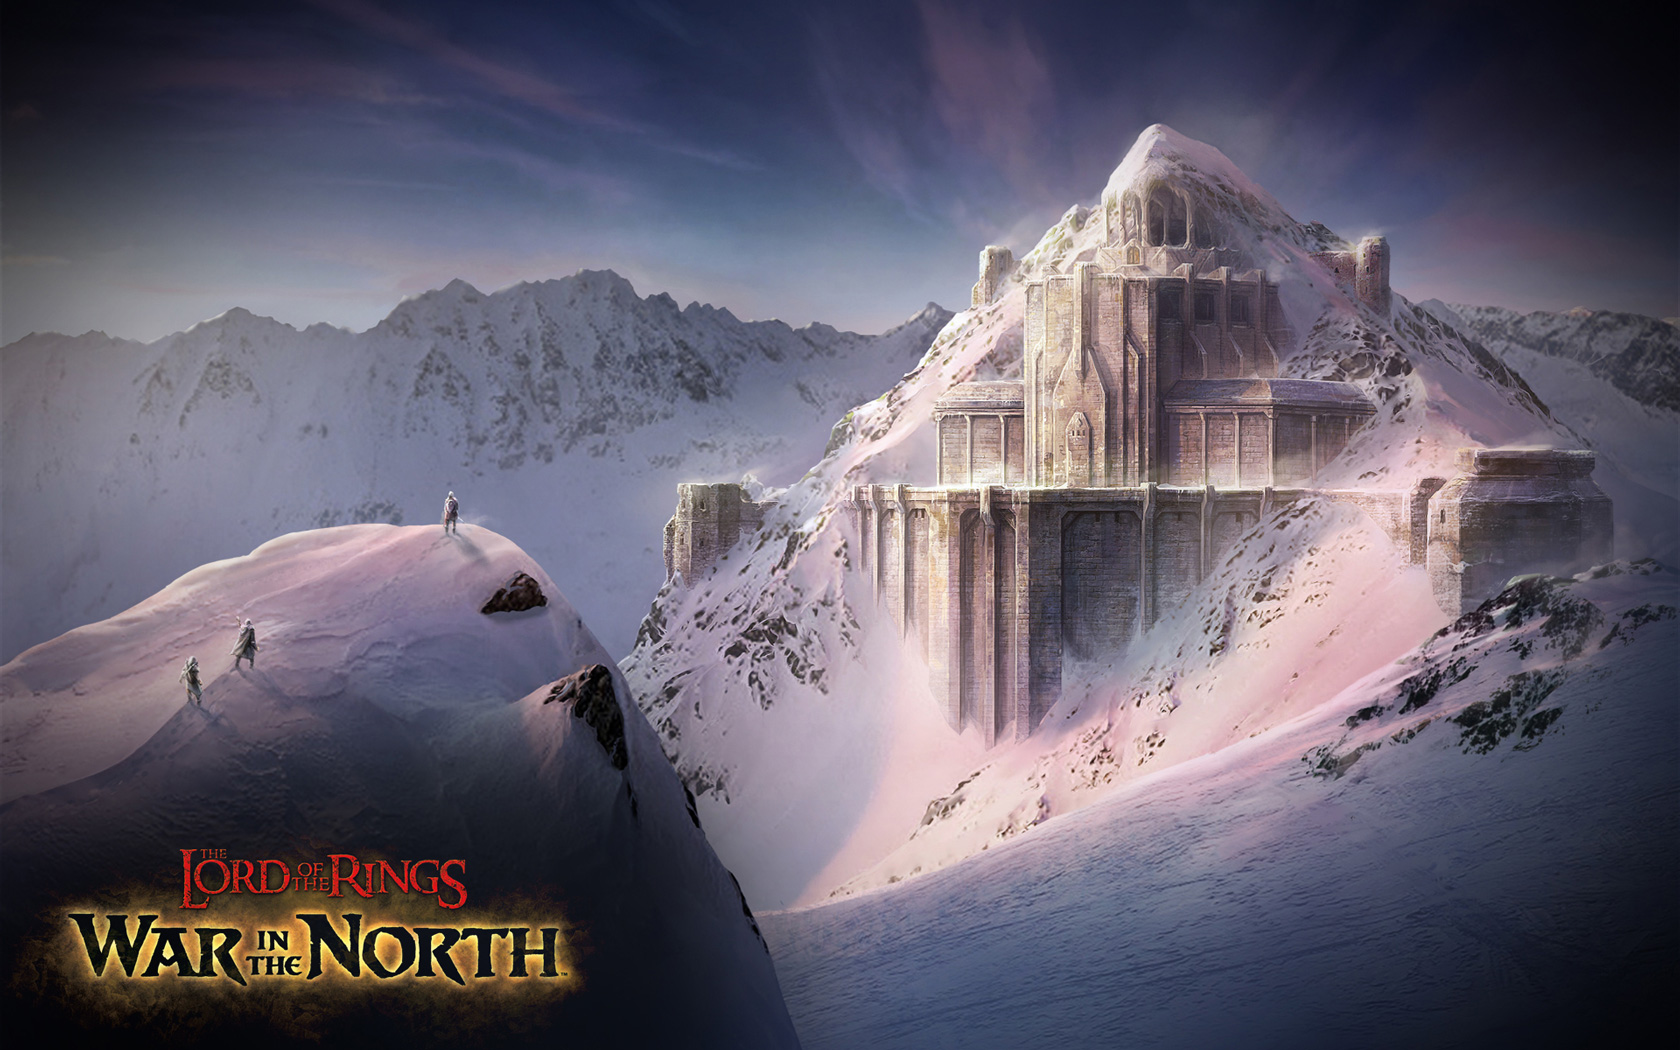 The Lord of the Rings: War in the North Wallpaper in 1680x1050